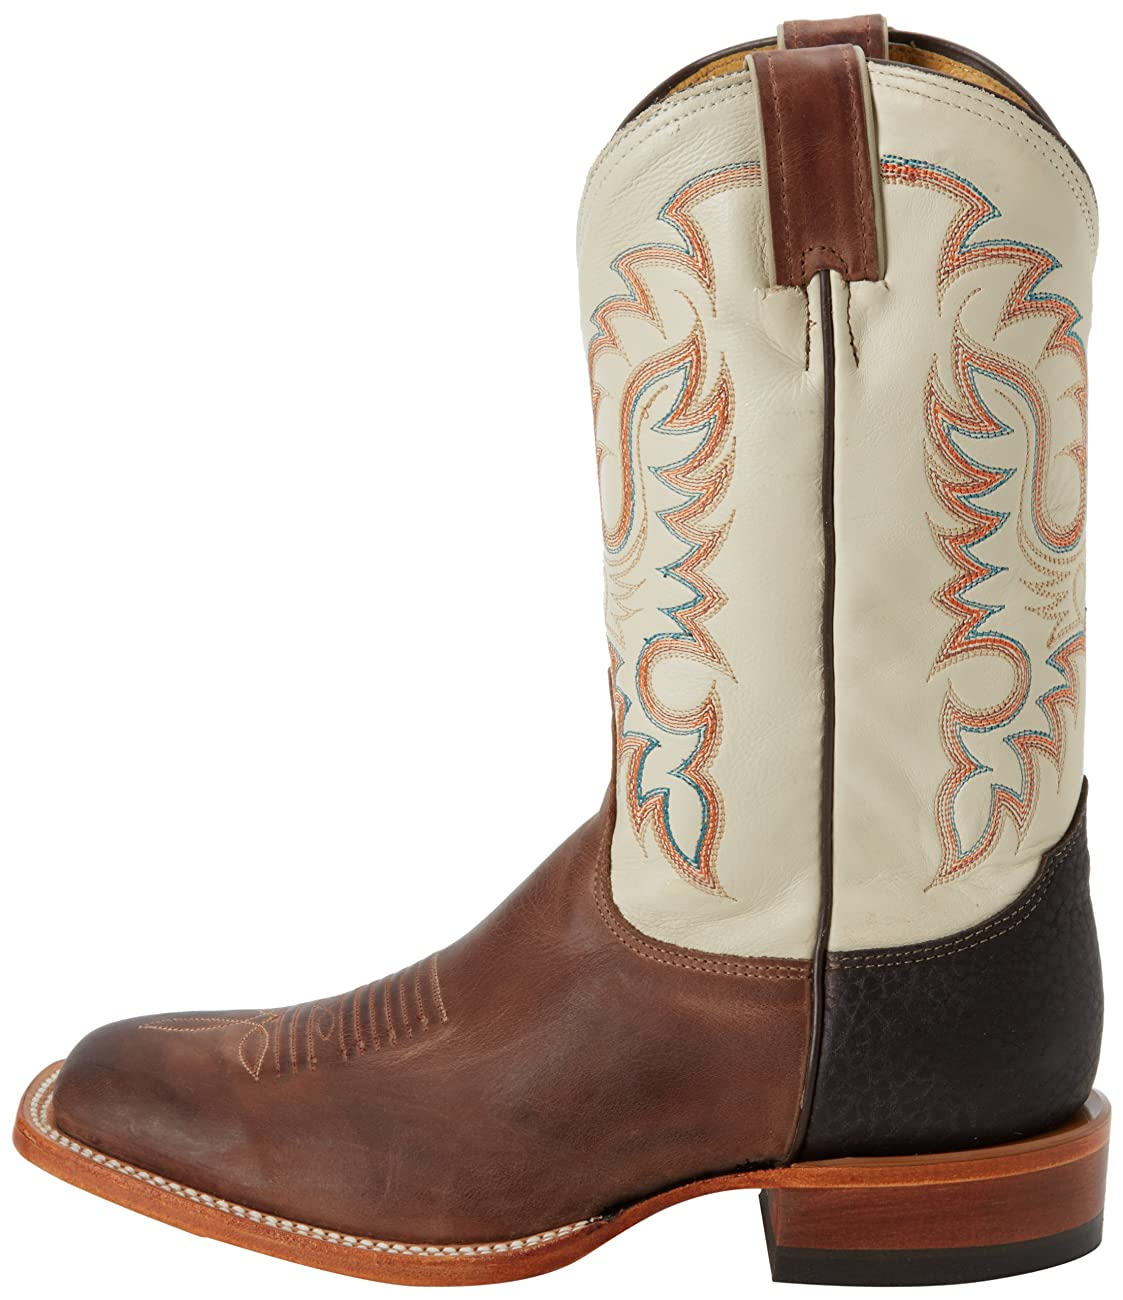 Nocona Boots Men's MD2735 11 Inch Boot 6